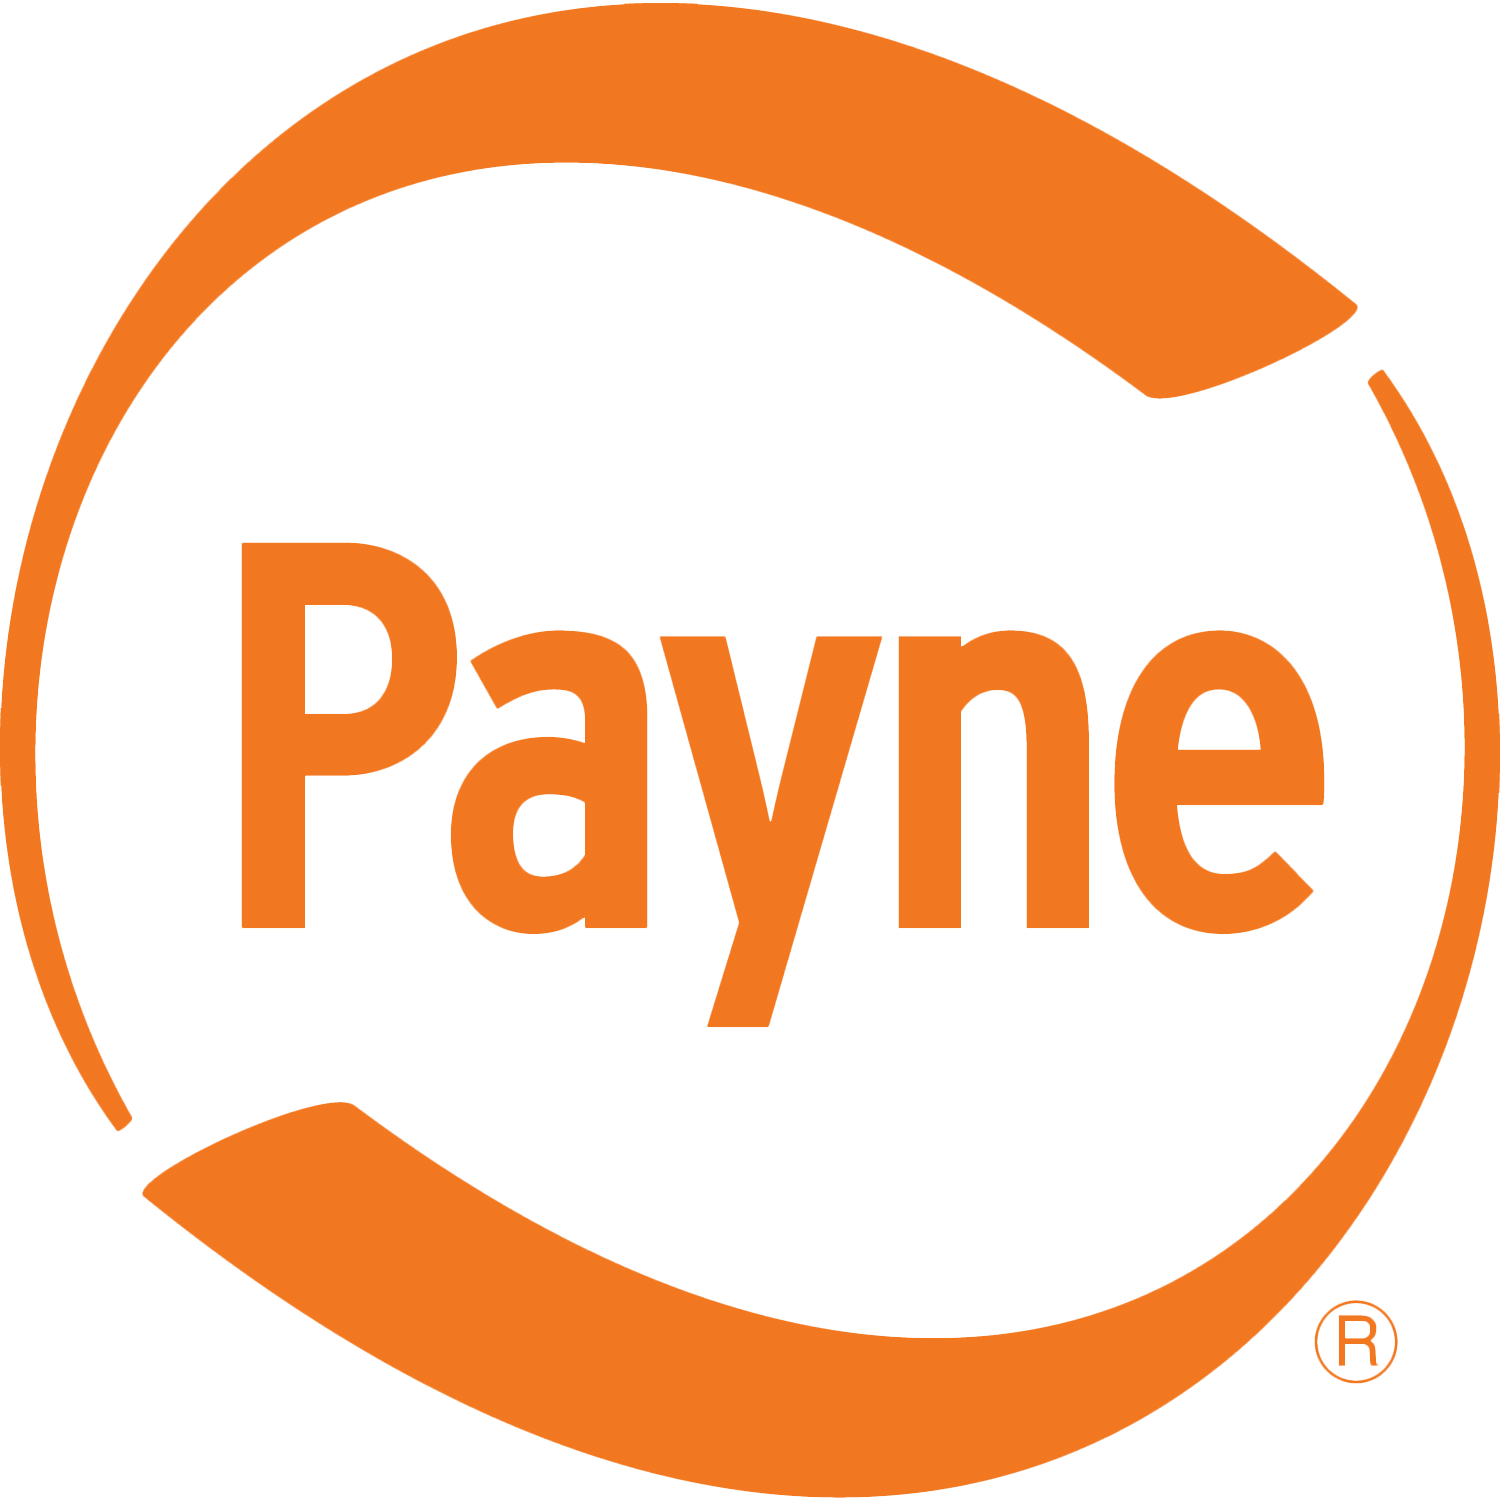 We provide gas furnace repairs on Payne HVAC systems for the Charlotte NC & surrounding areas